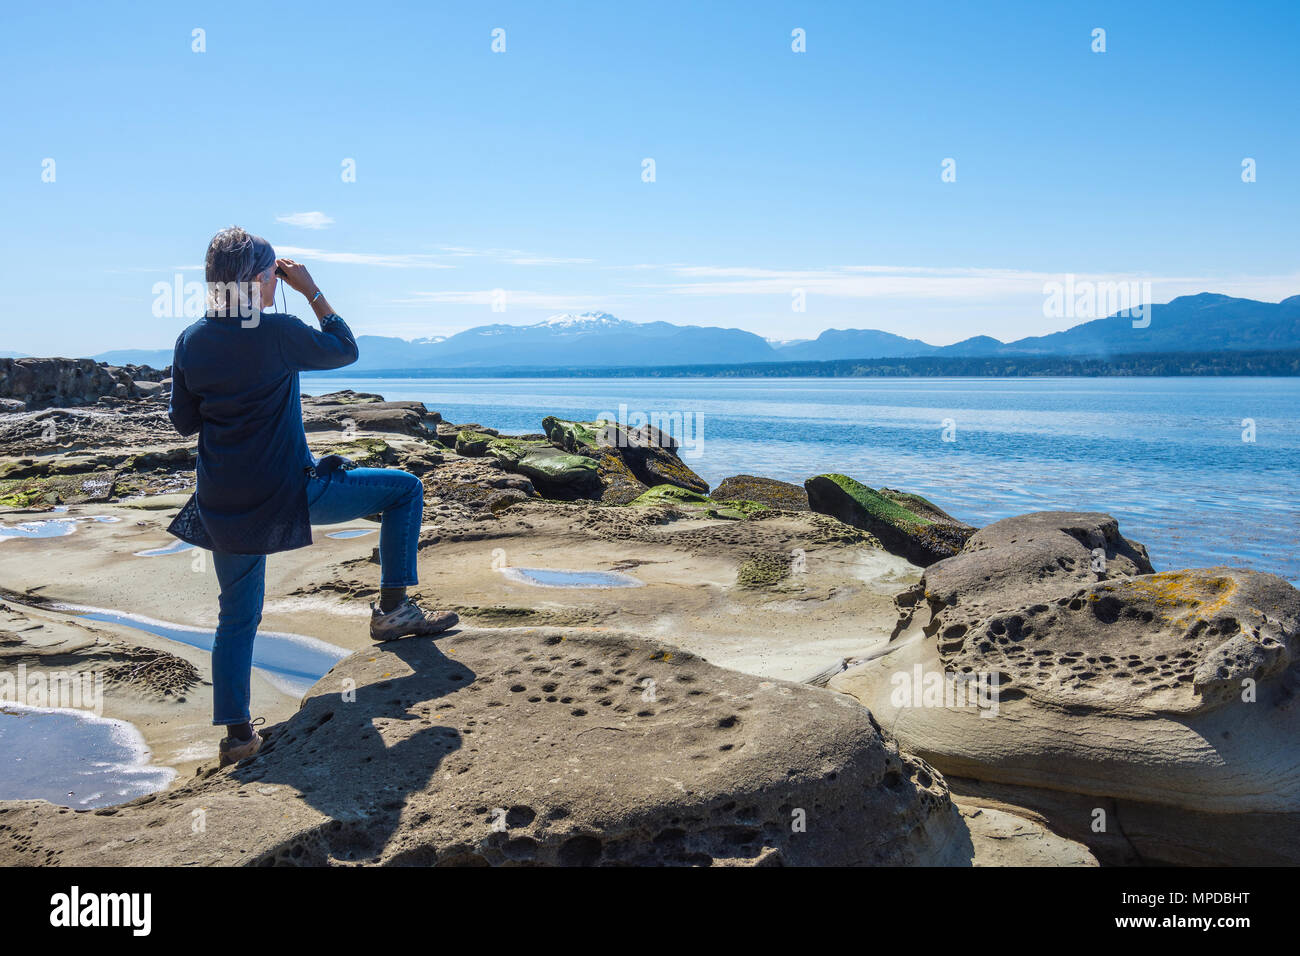 Young woman looking out to sea, Hornby Island, BC, Canada. - Stock Image